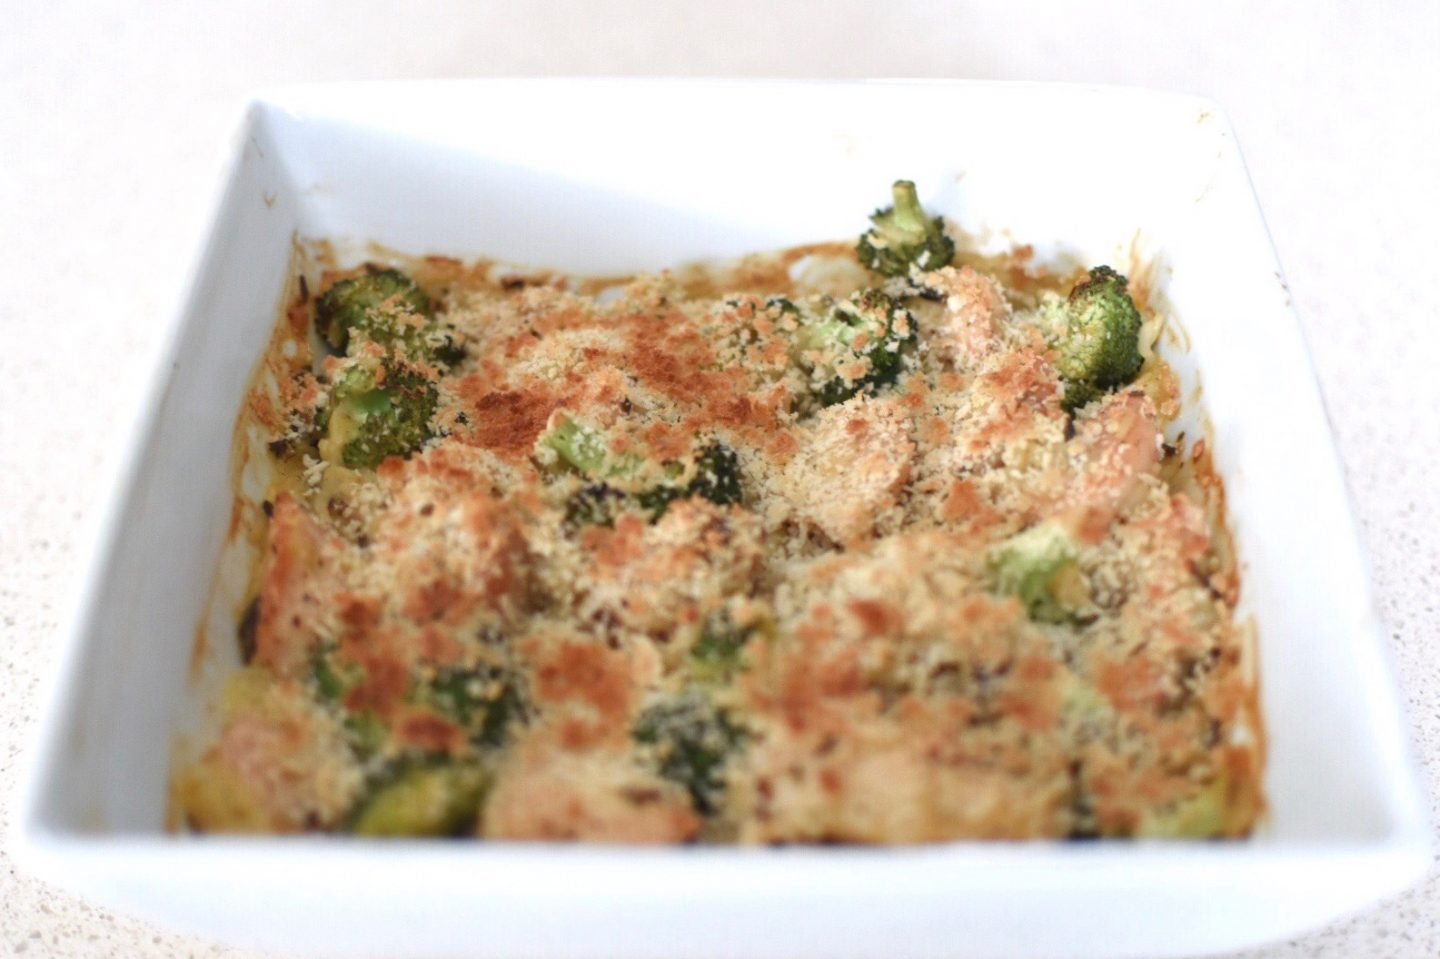 a 5 ingredient weeknight wonder – broccoli chicken casserole